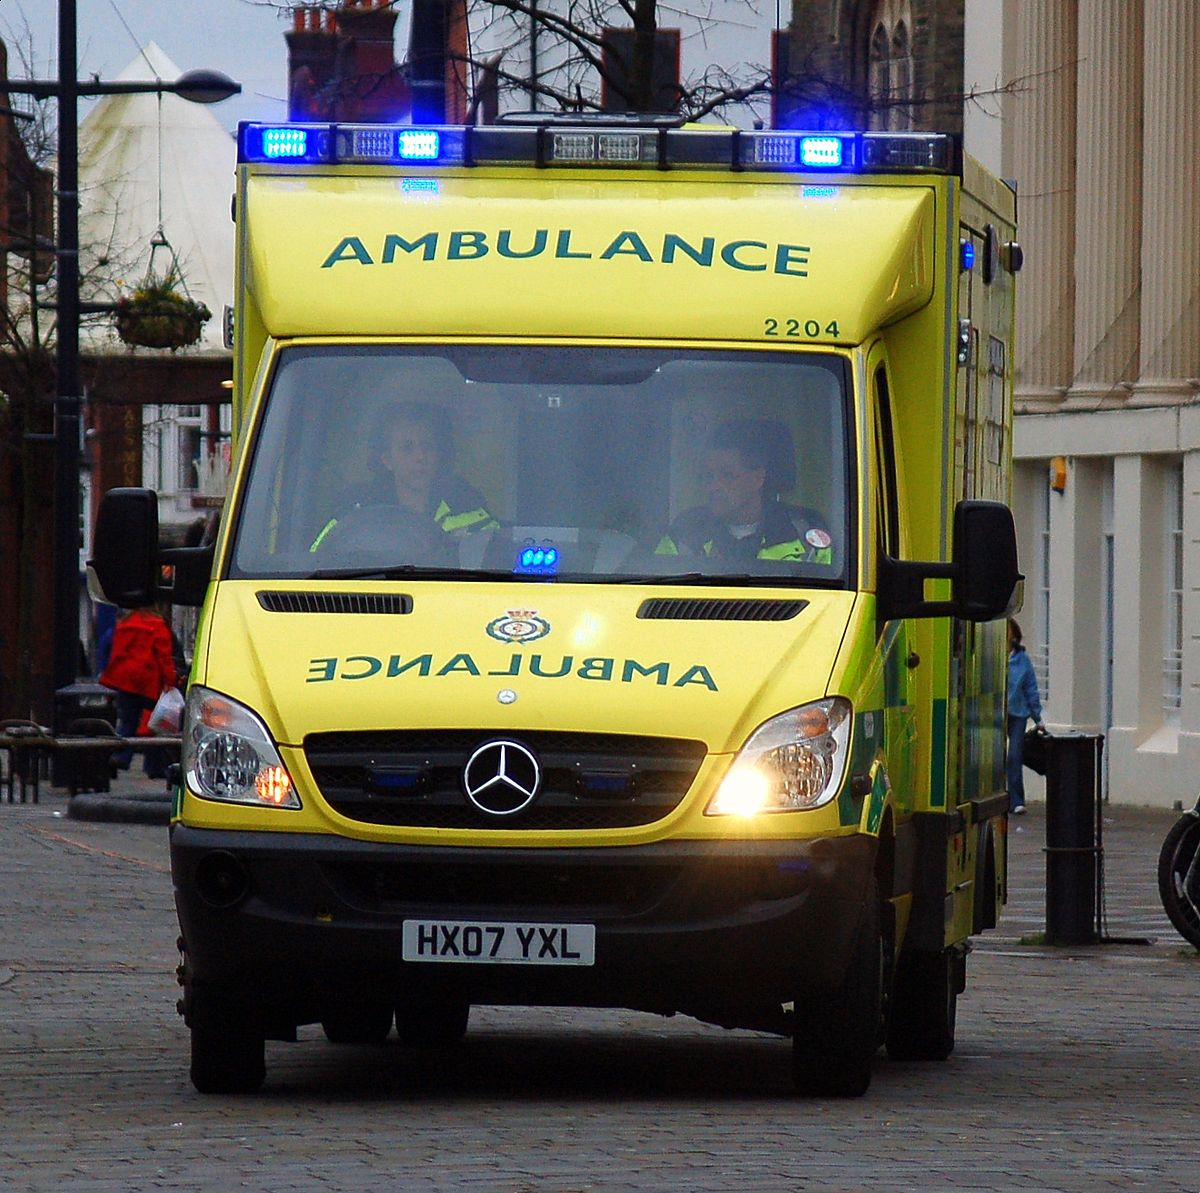 Emergency medical services in the United Kingdom - Simple